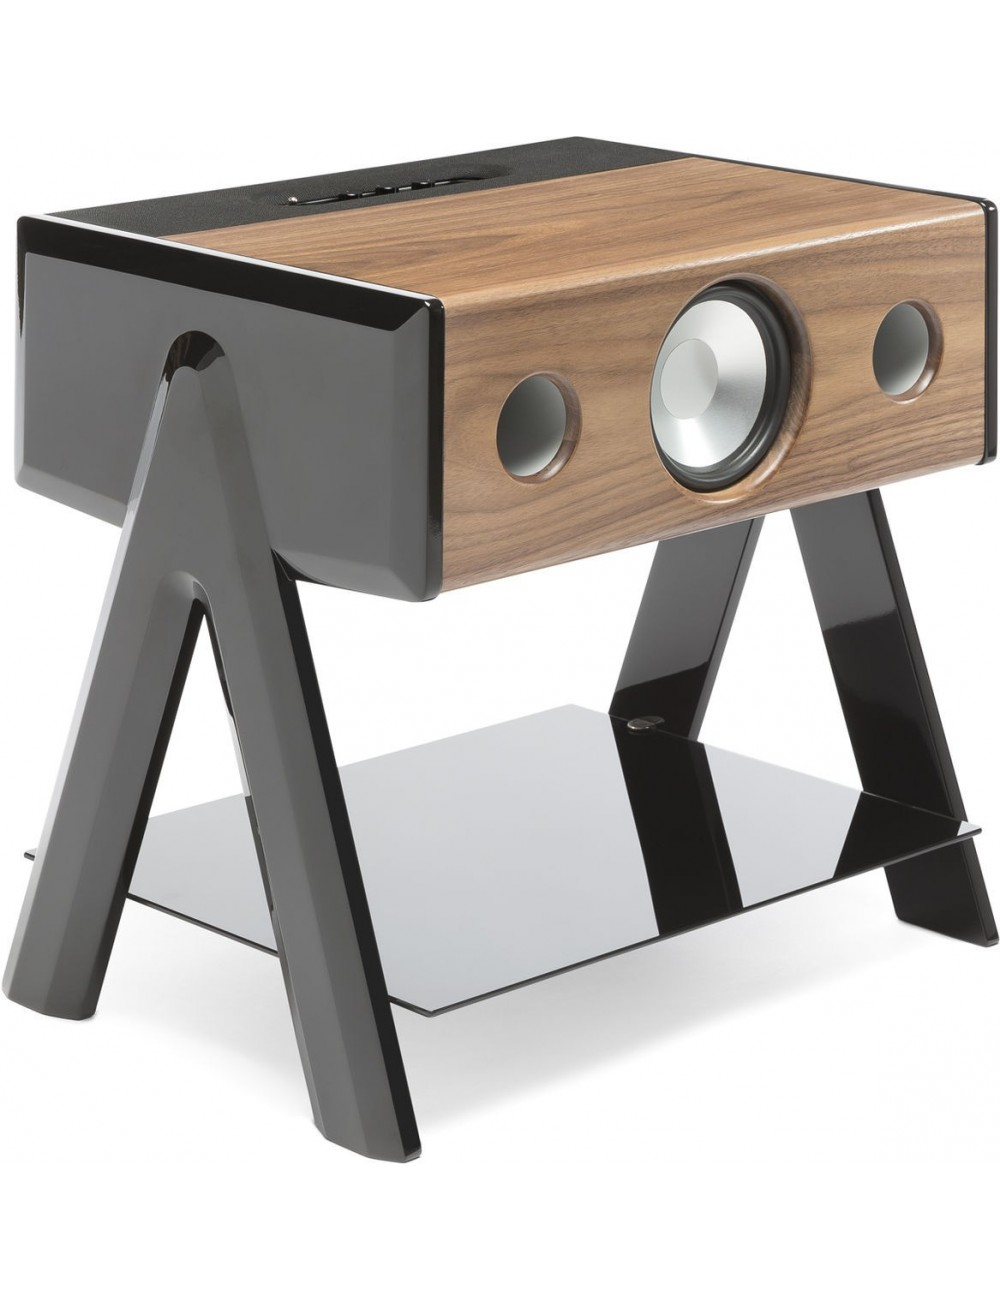 Cube - Woody made in france la boite concept